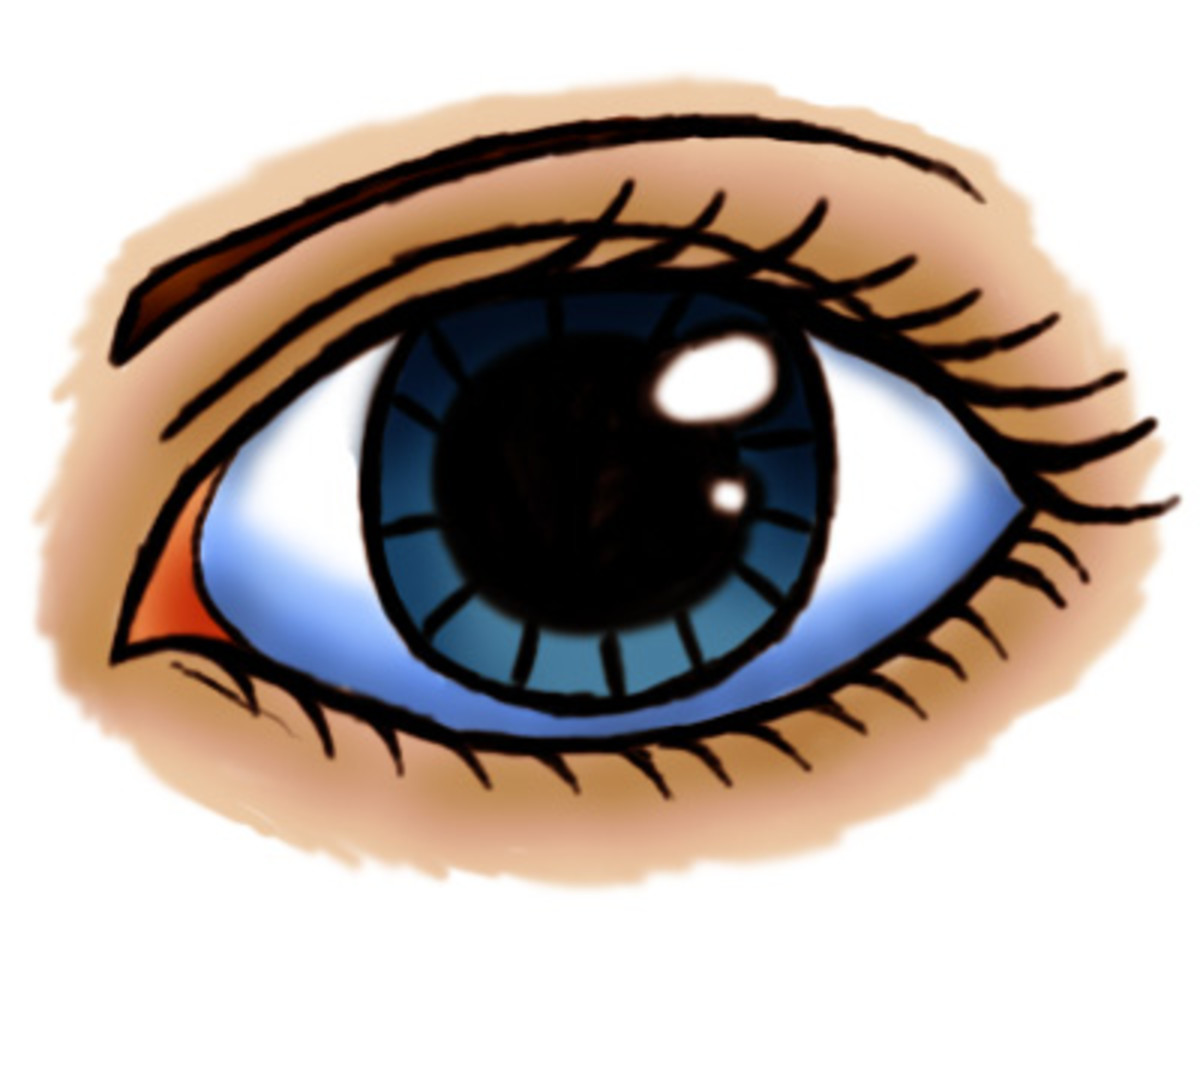 I decided to color the eye in. If you're in to that sort of thing, I'll be making more tutorials involving coloring things in and the likes!